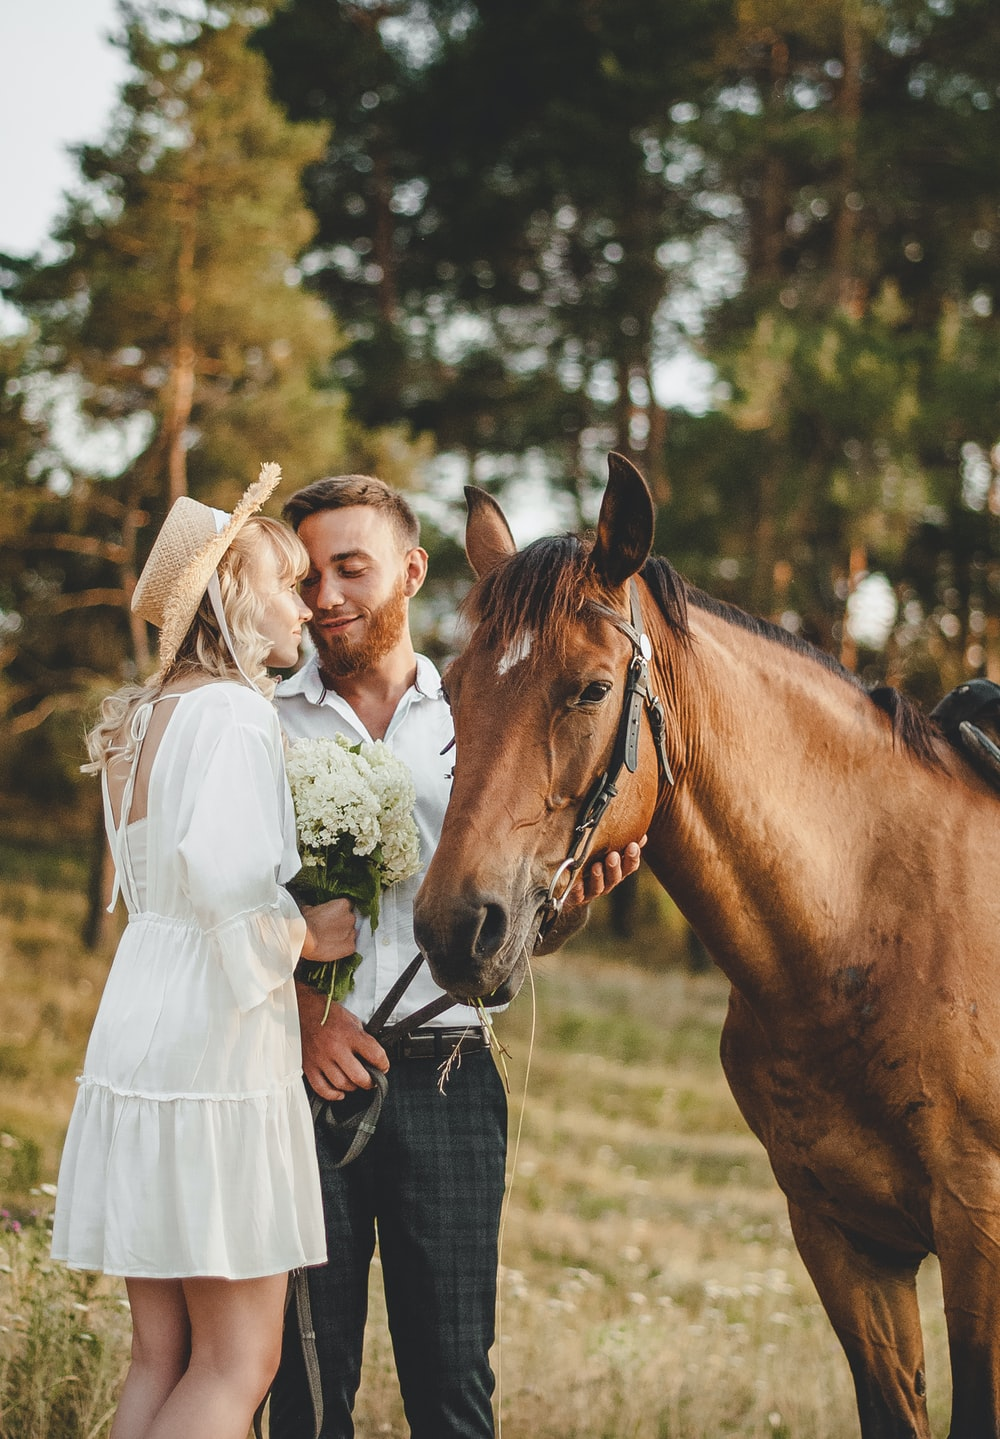 woman in white dress standing beside brown horse during daytime